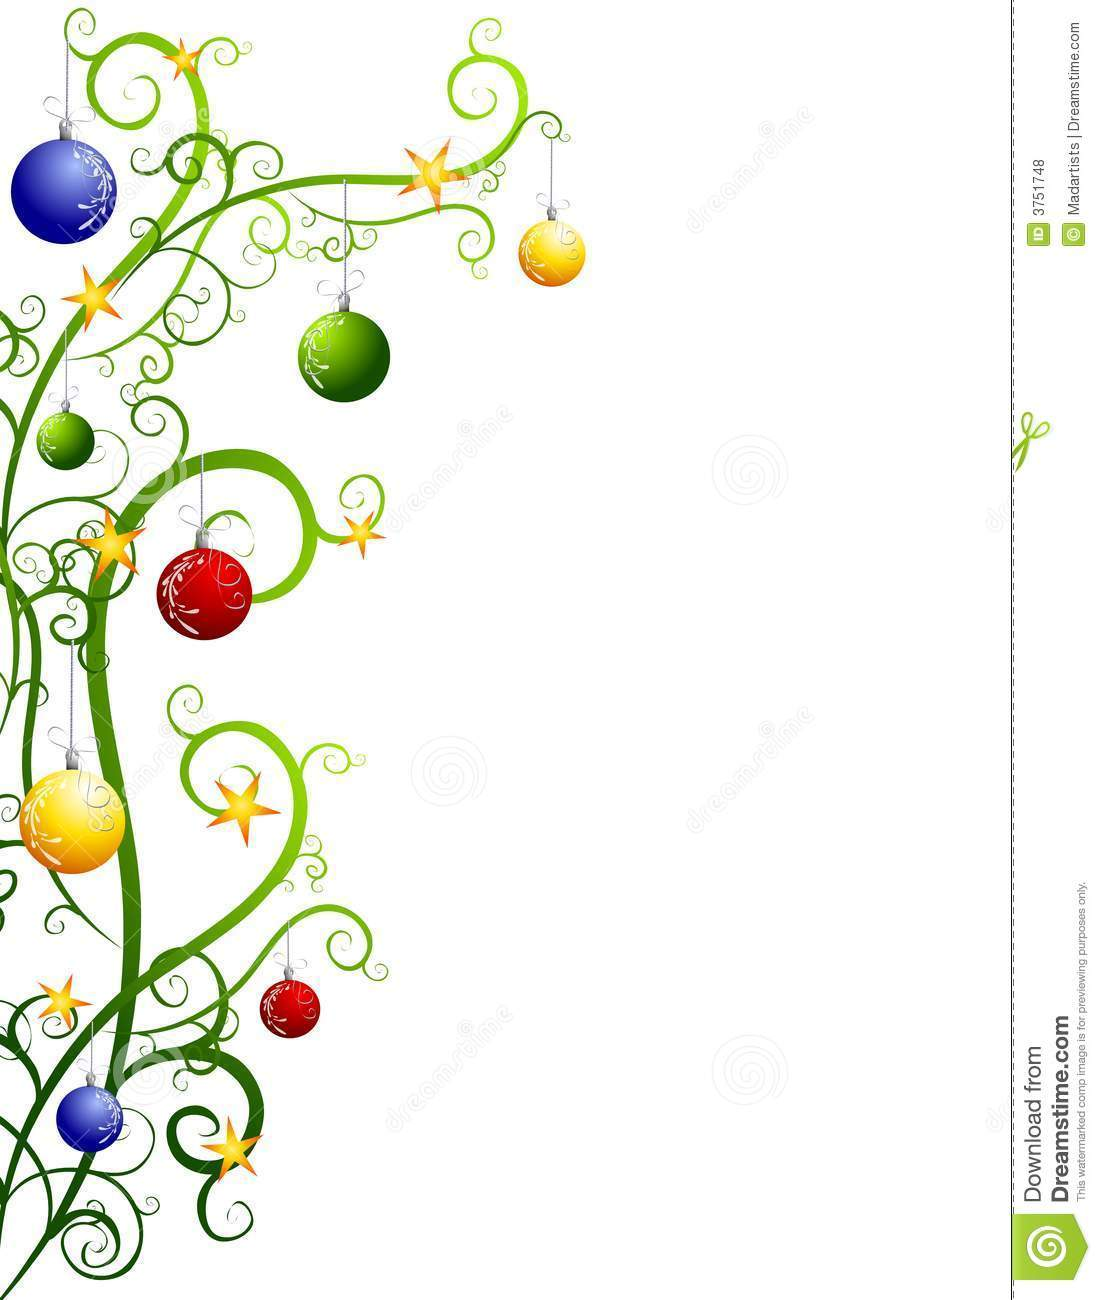 photo relating to Free Christmas Clipart Borders Printable called Absolutely free Christma Clipart Border - totally free xmas clipart border